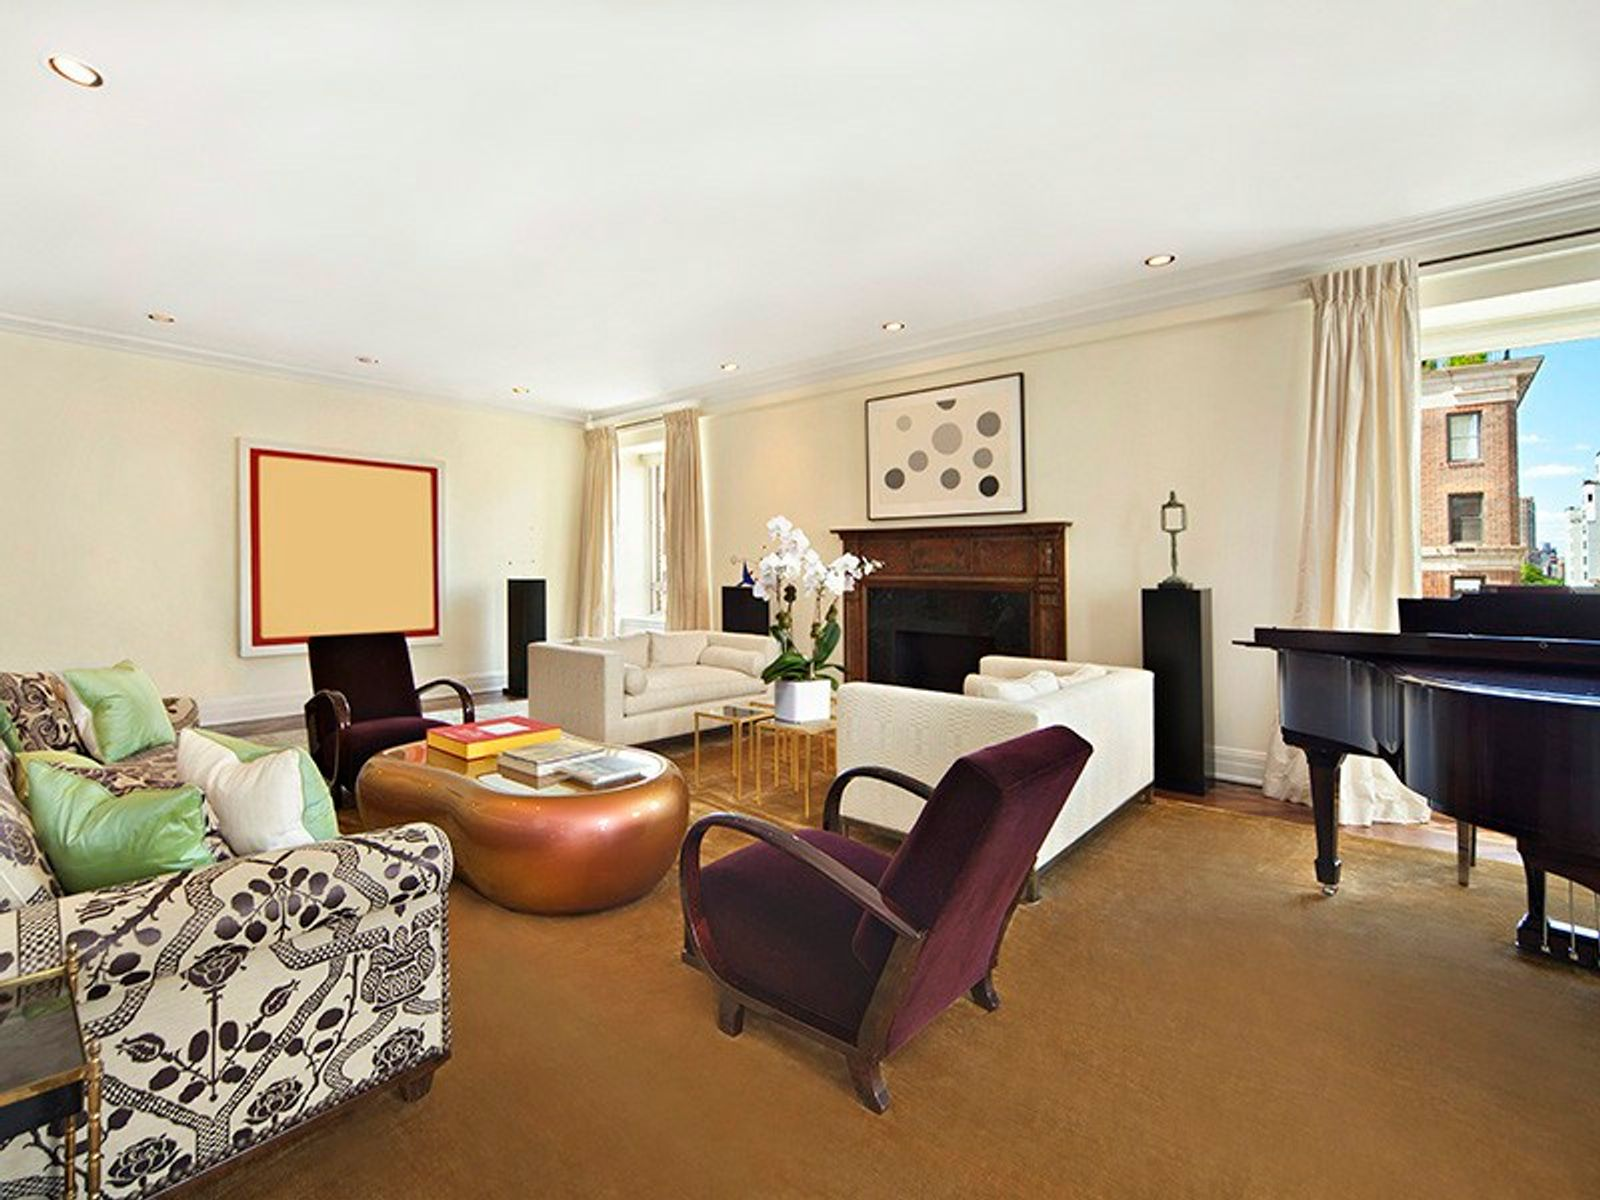 Spacious Splendor at 730 Park Avenue, New York NY Cooperative - New York City Real Estate